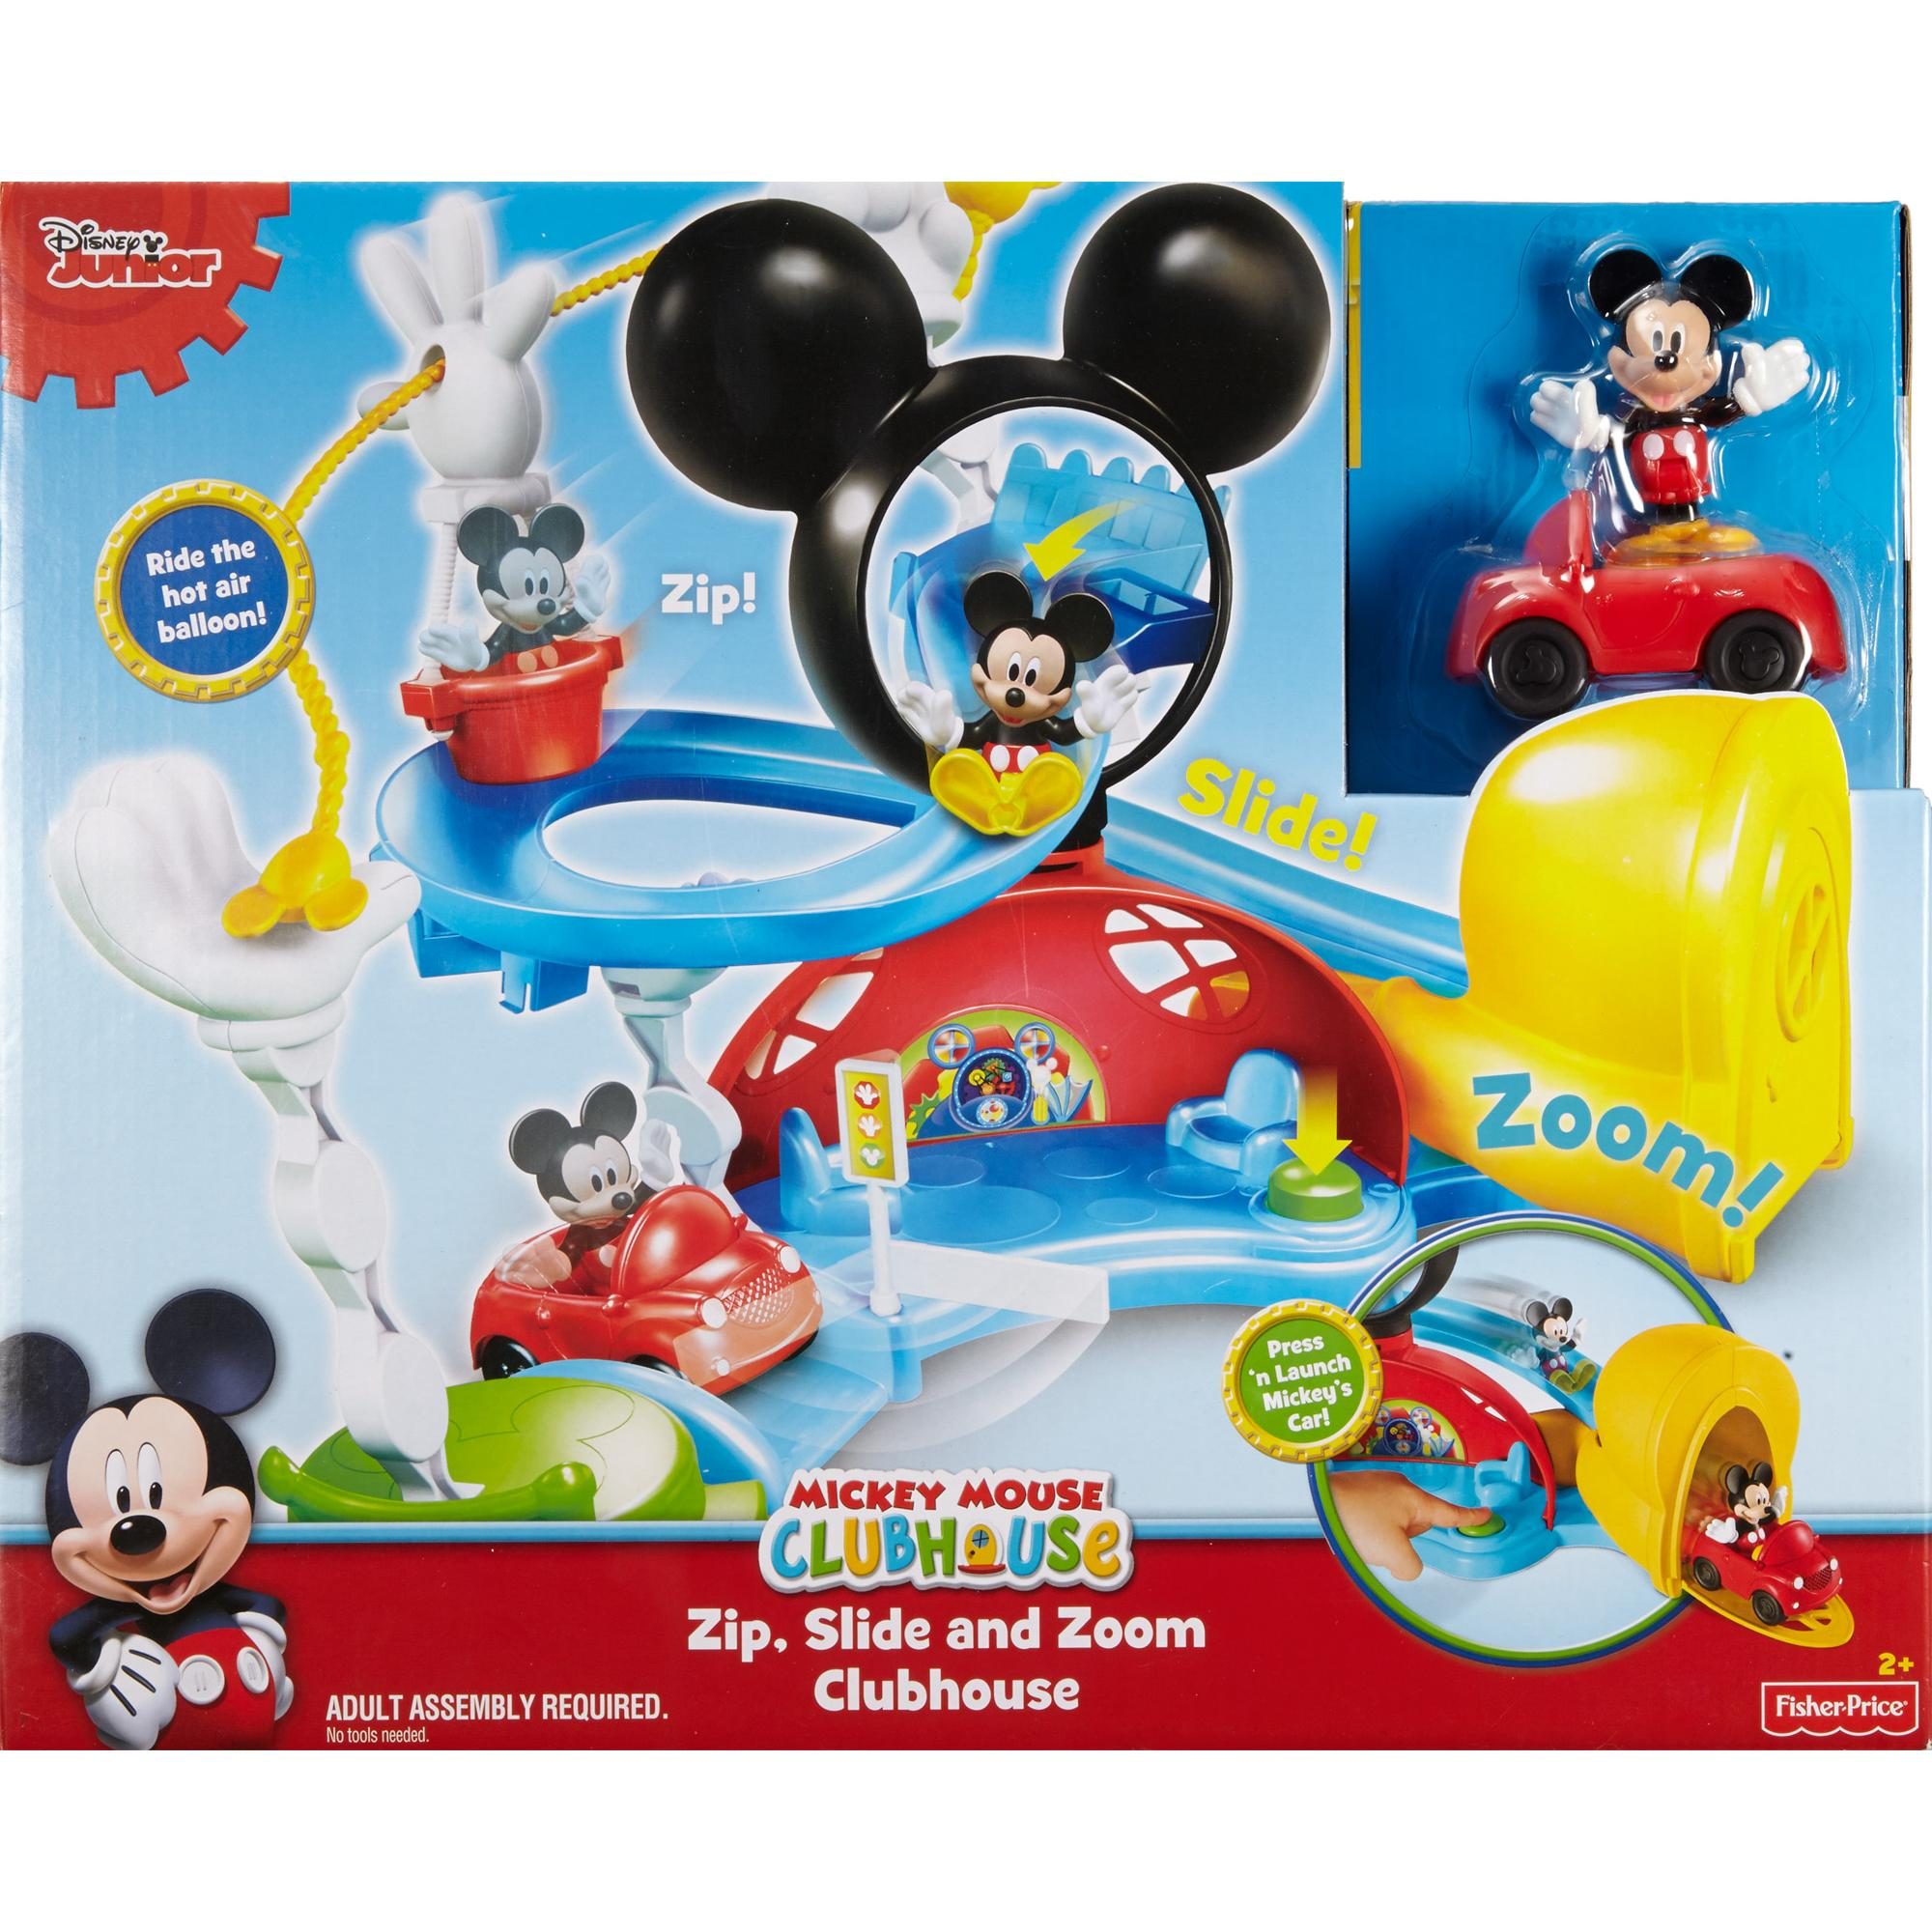 Fisher Price Disney Mickey Mouse Clubhouse, Zip, Slide And Zoom Clubhouse